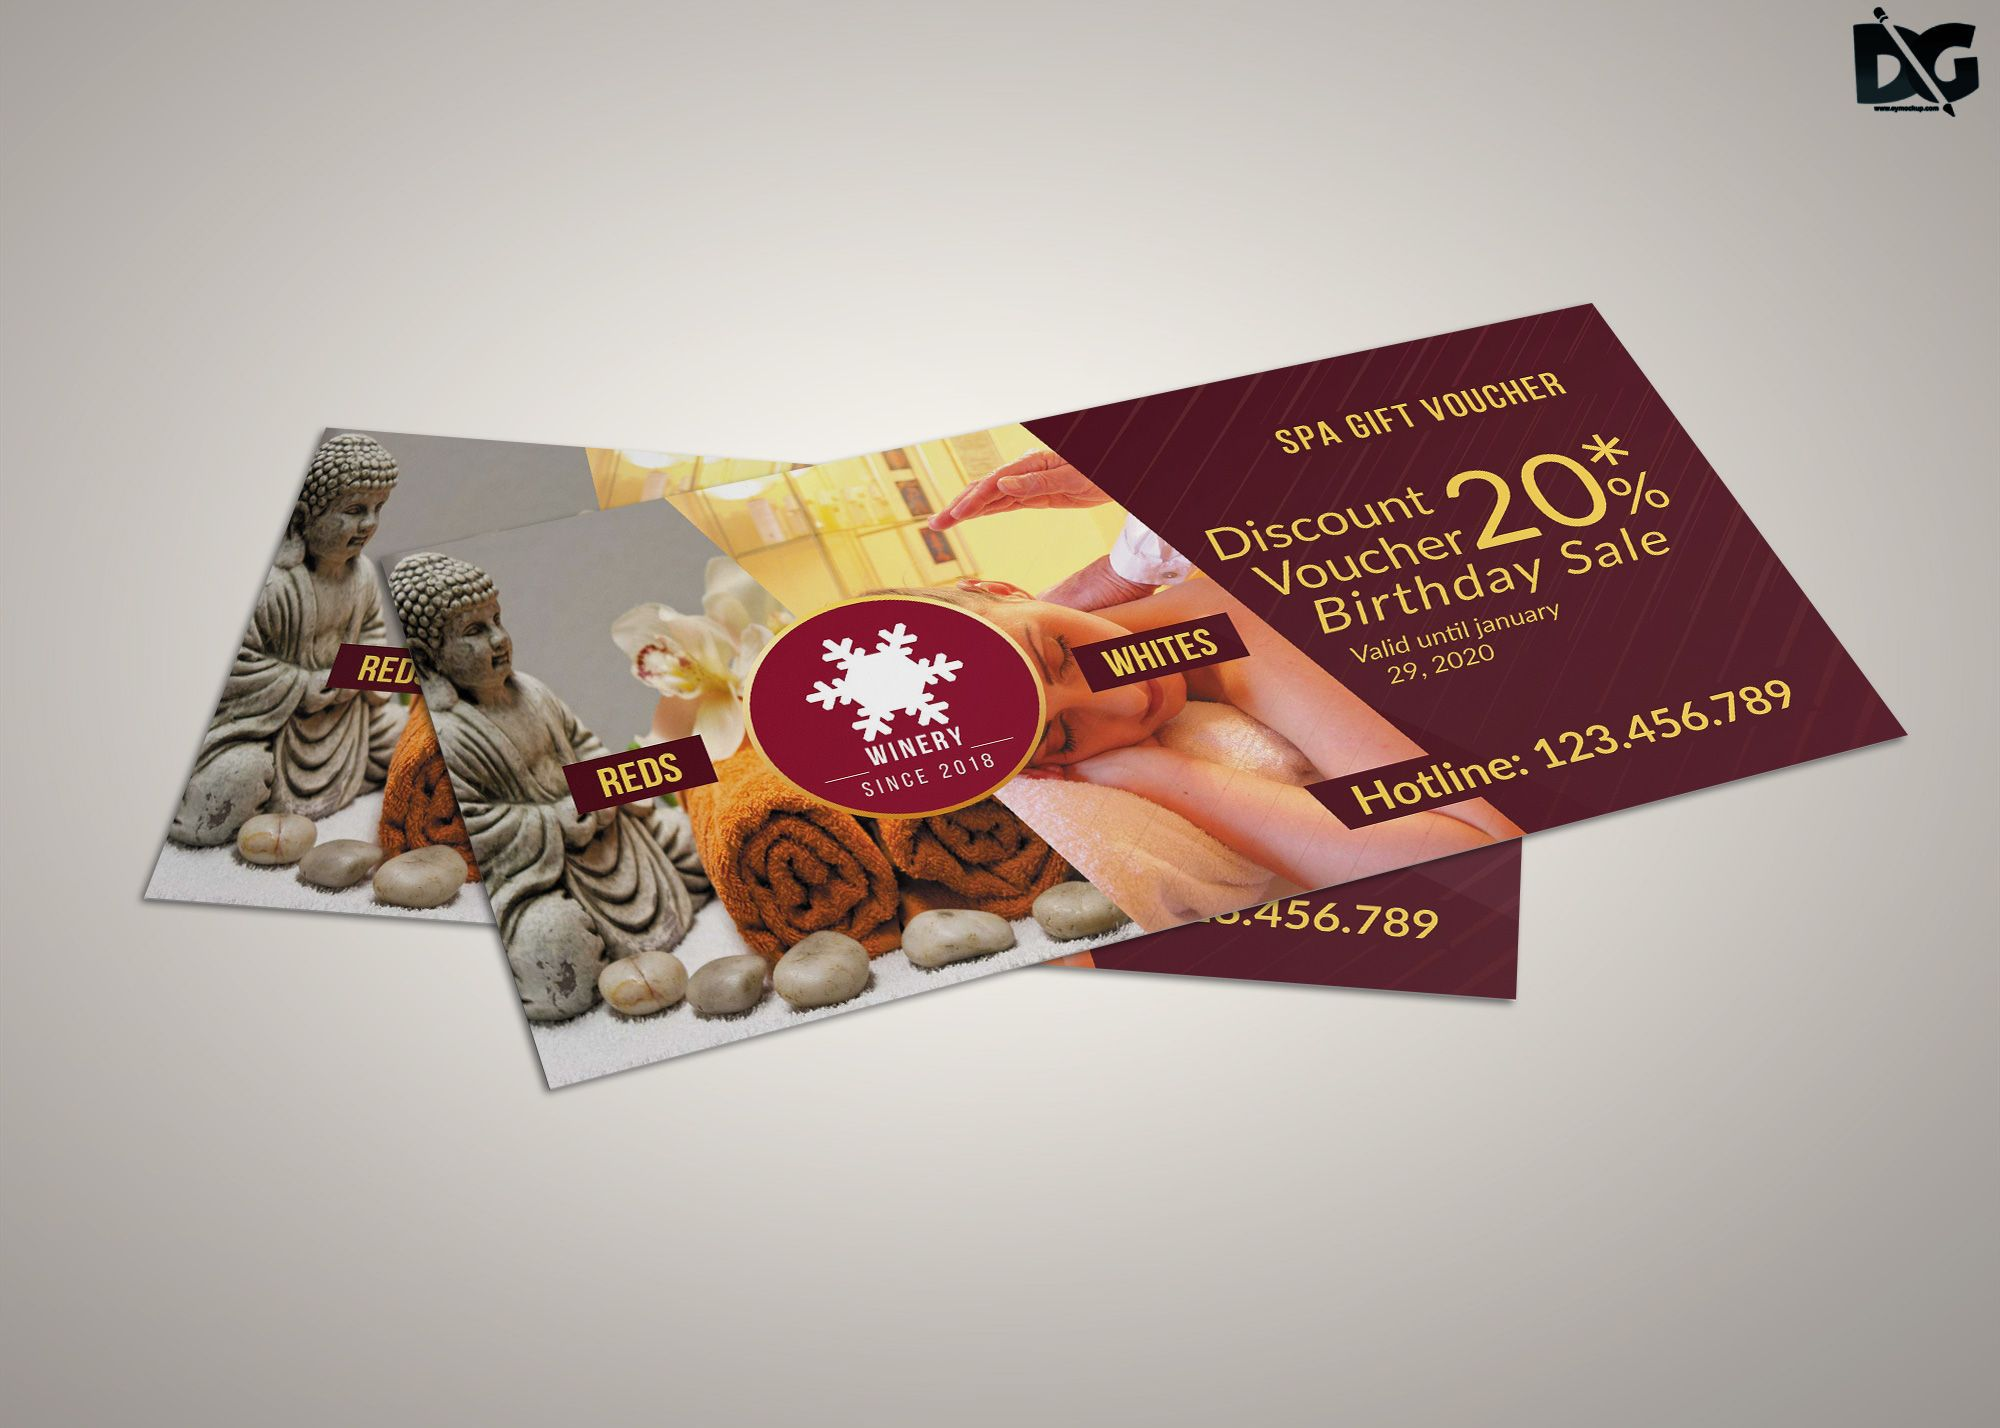 003 Formidable Gift Card Template Psd Example  Christma Photoshop Free HolderFull